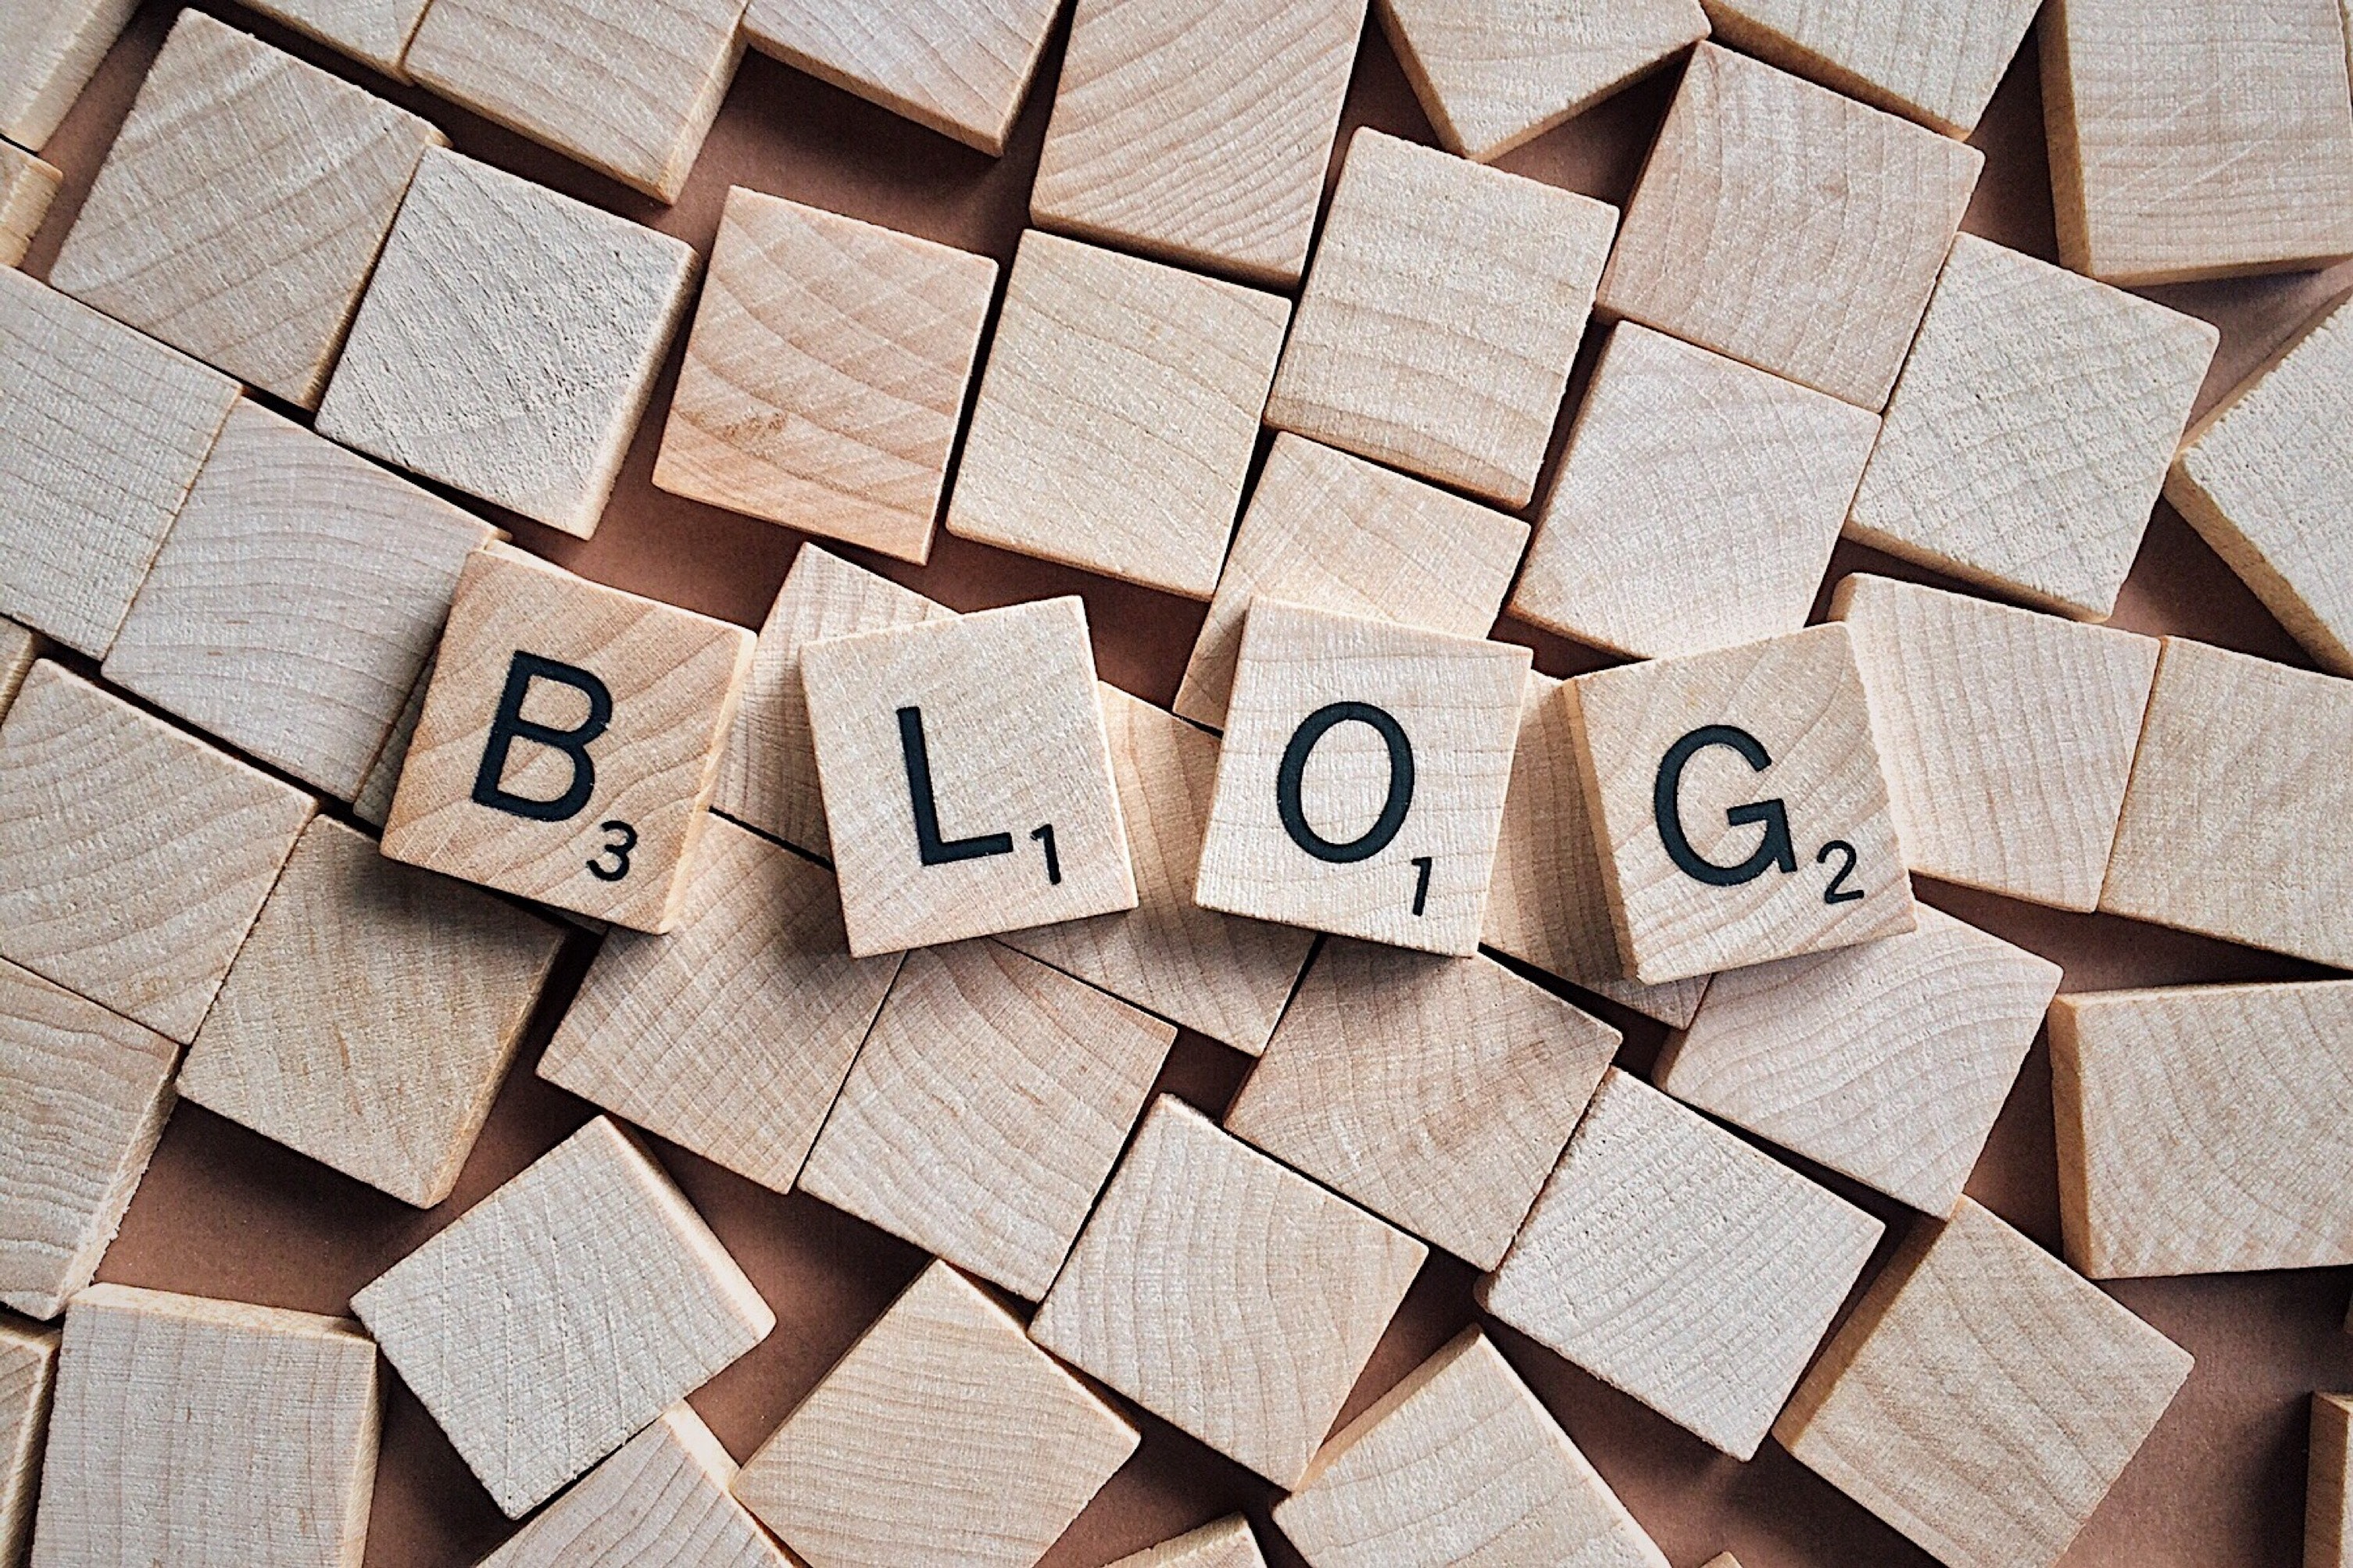 4 simple steps to building Your successful blog: Part 1